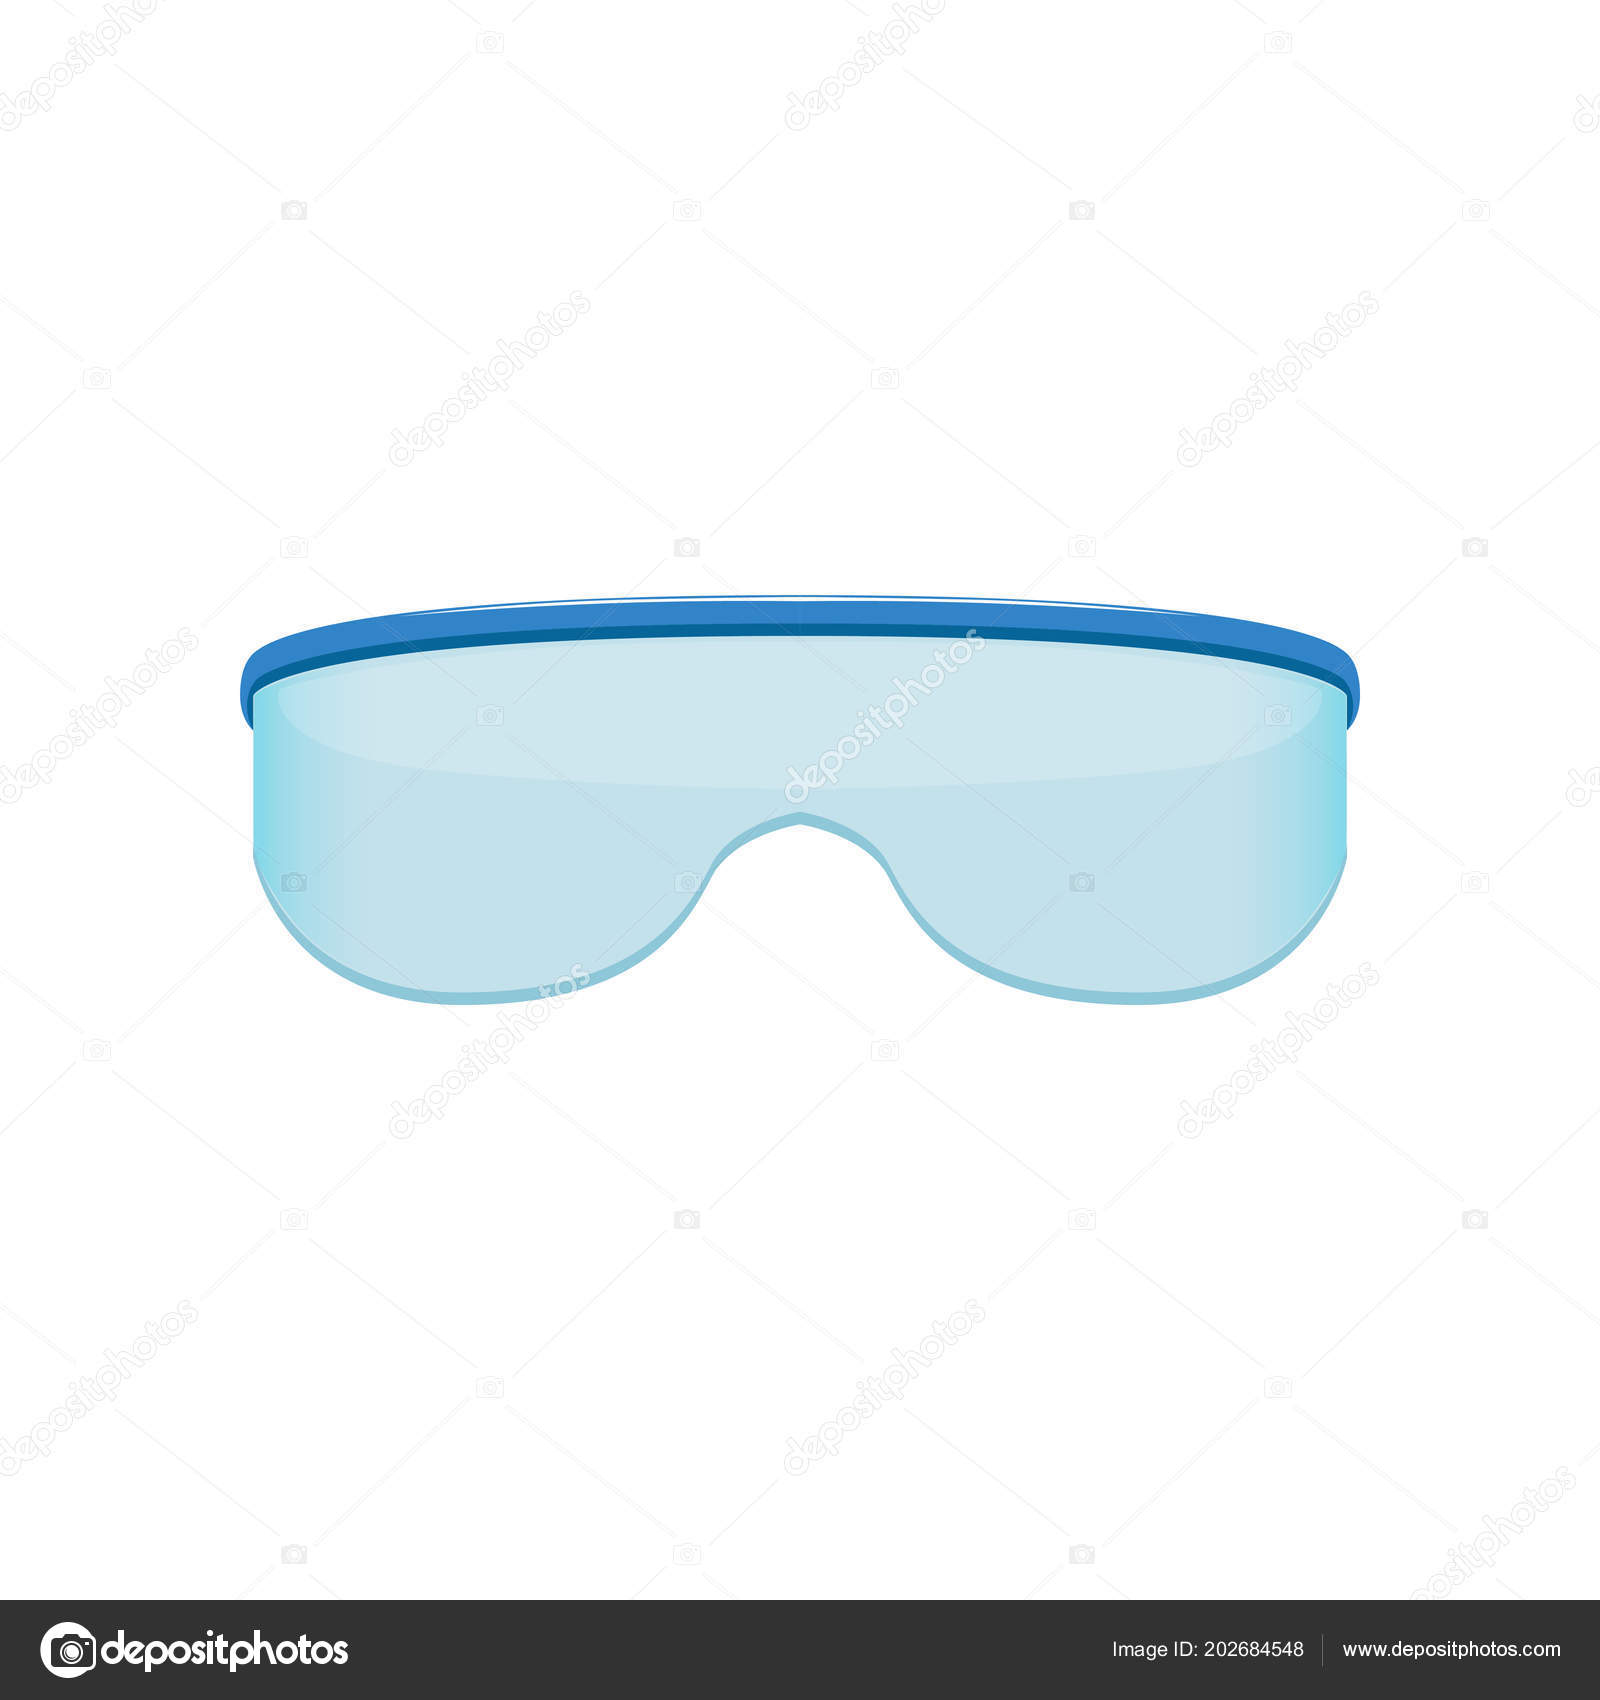 Shield style sunglasses with blue tinted lenses  Protective